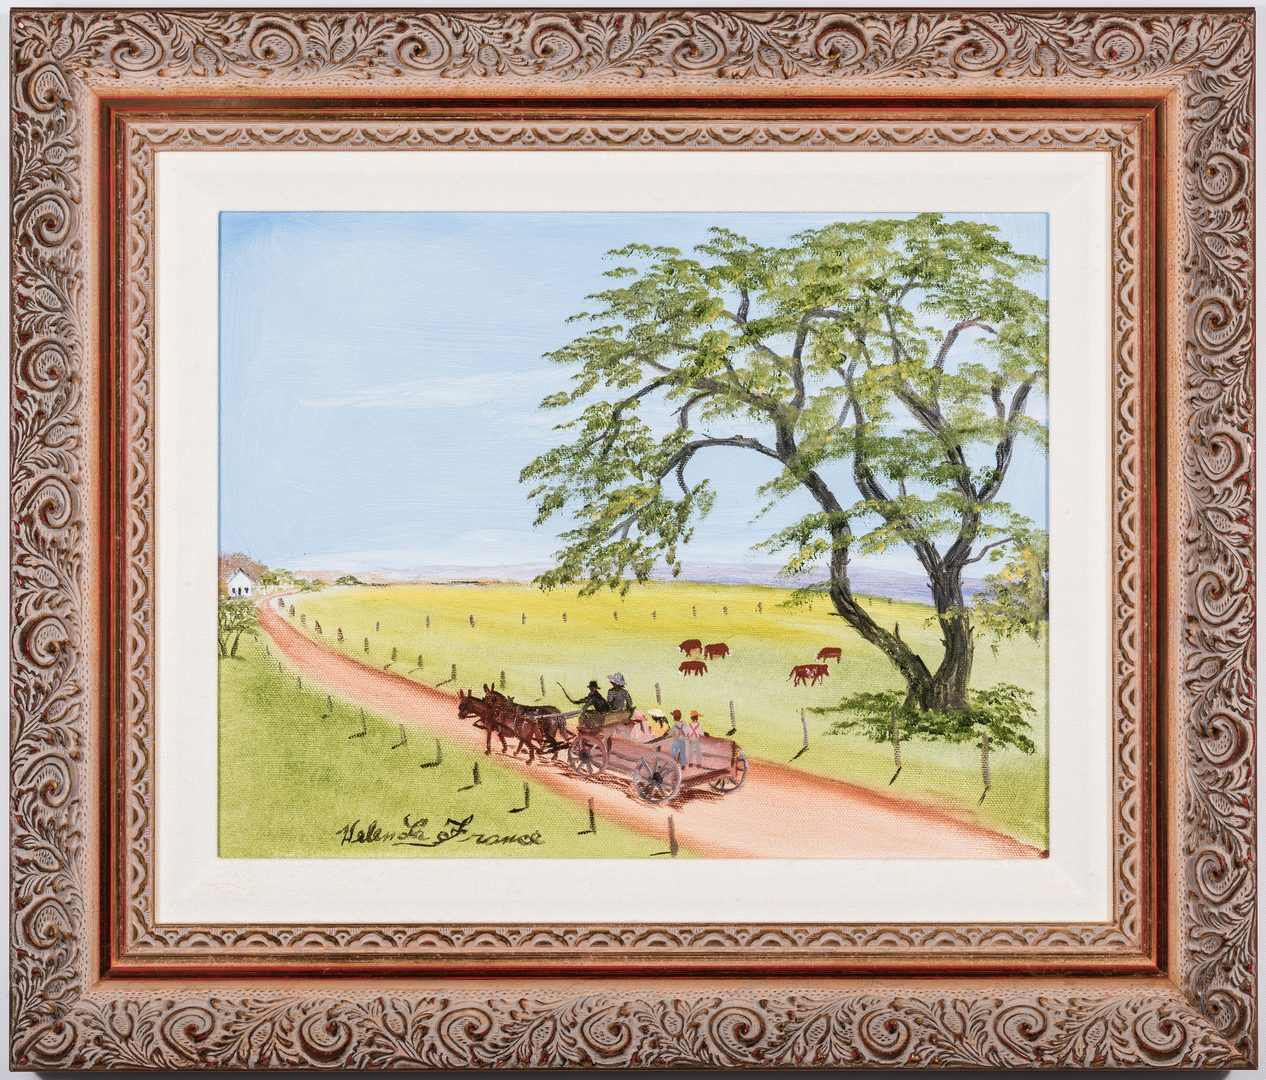 Lot 92: Helen LaFrance, O/C, Family in Mule Wagon